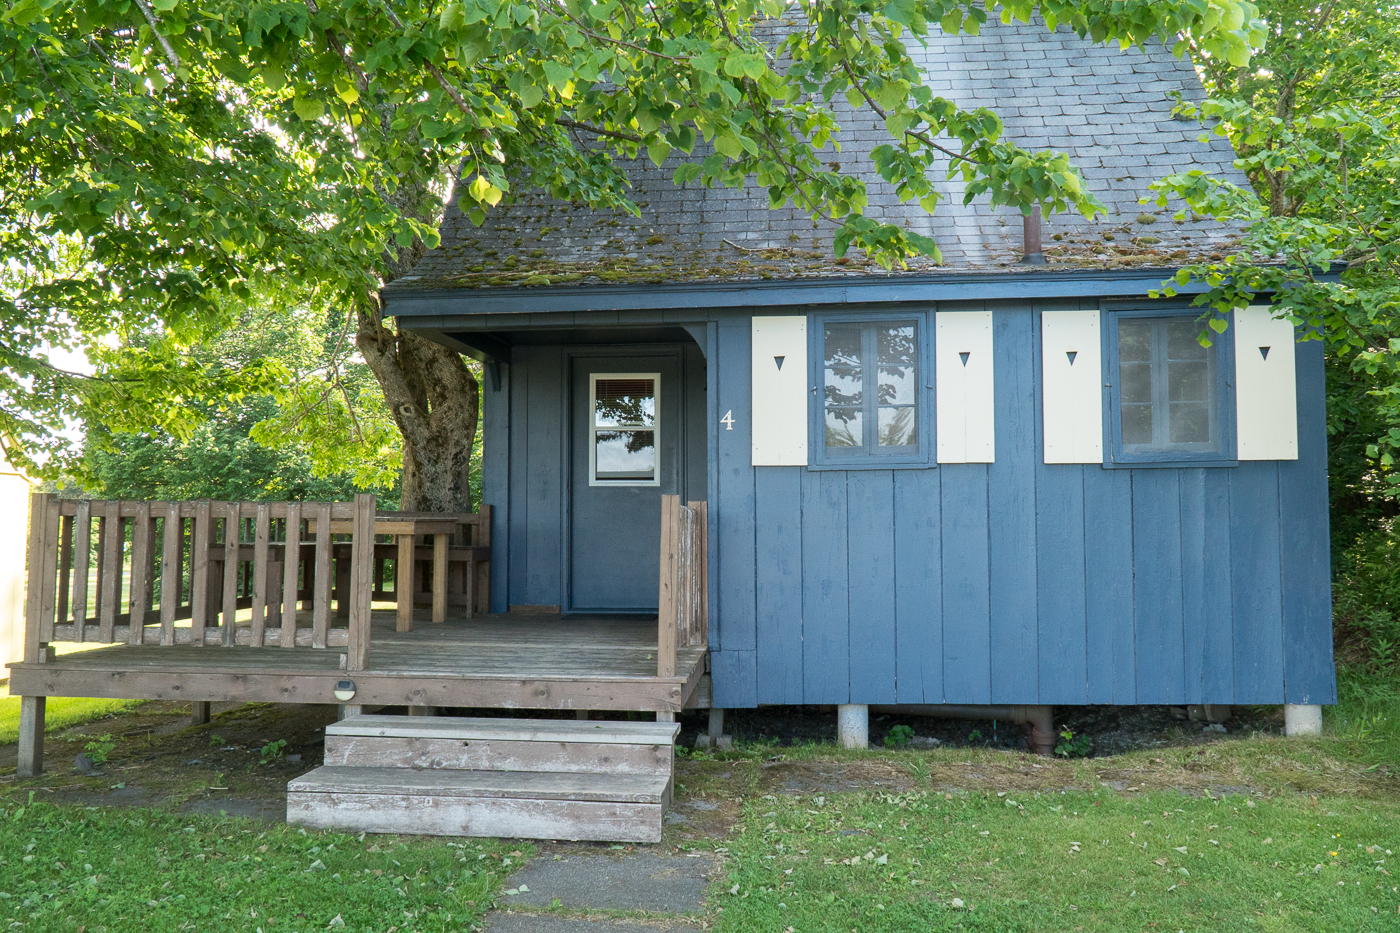 Notre chalet bleu de Fundy Highlands Chalets au parc national de Fundy